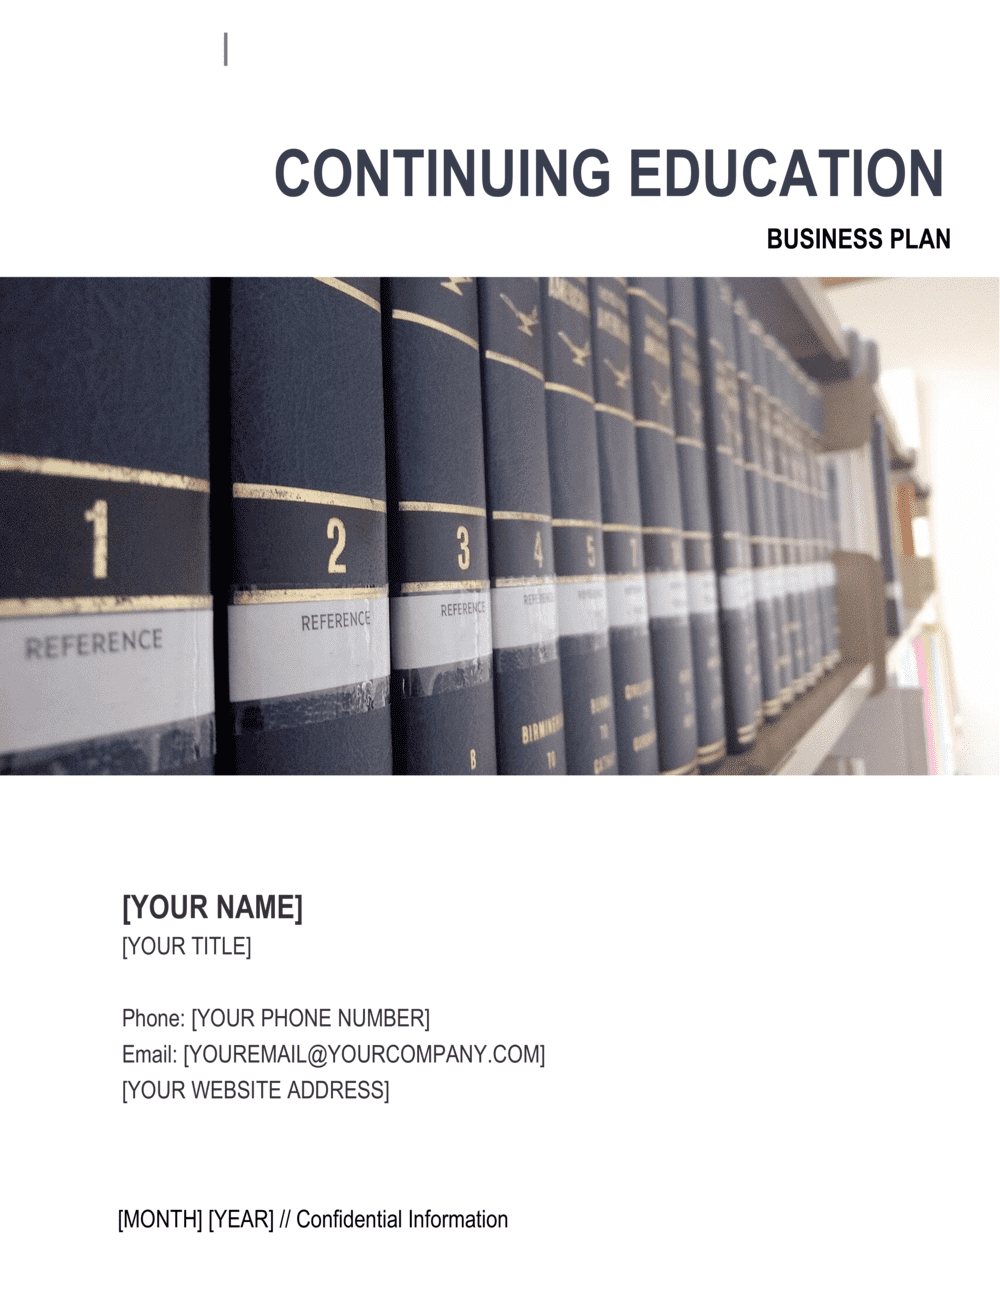 Business-in-a-Box's Continuing Education Center Business Plan Template